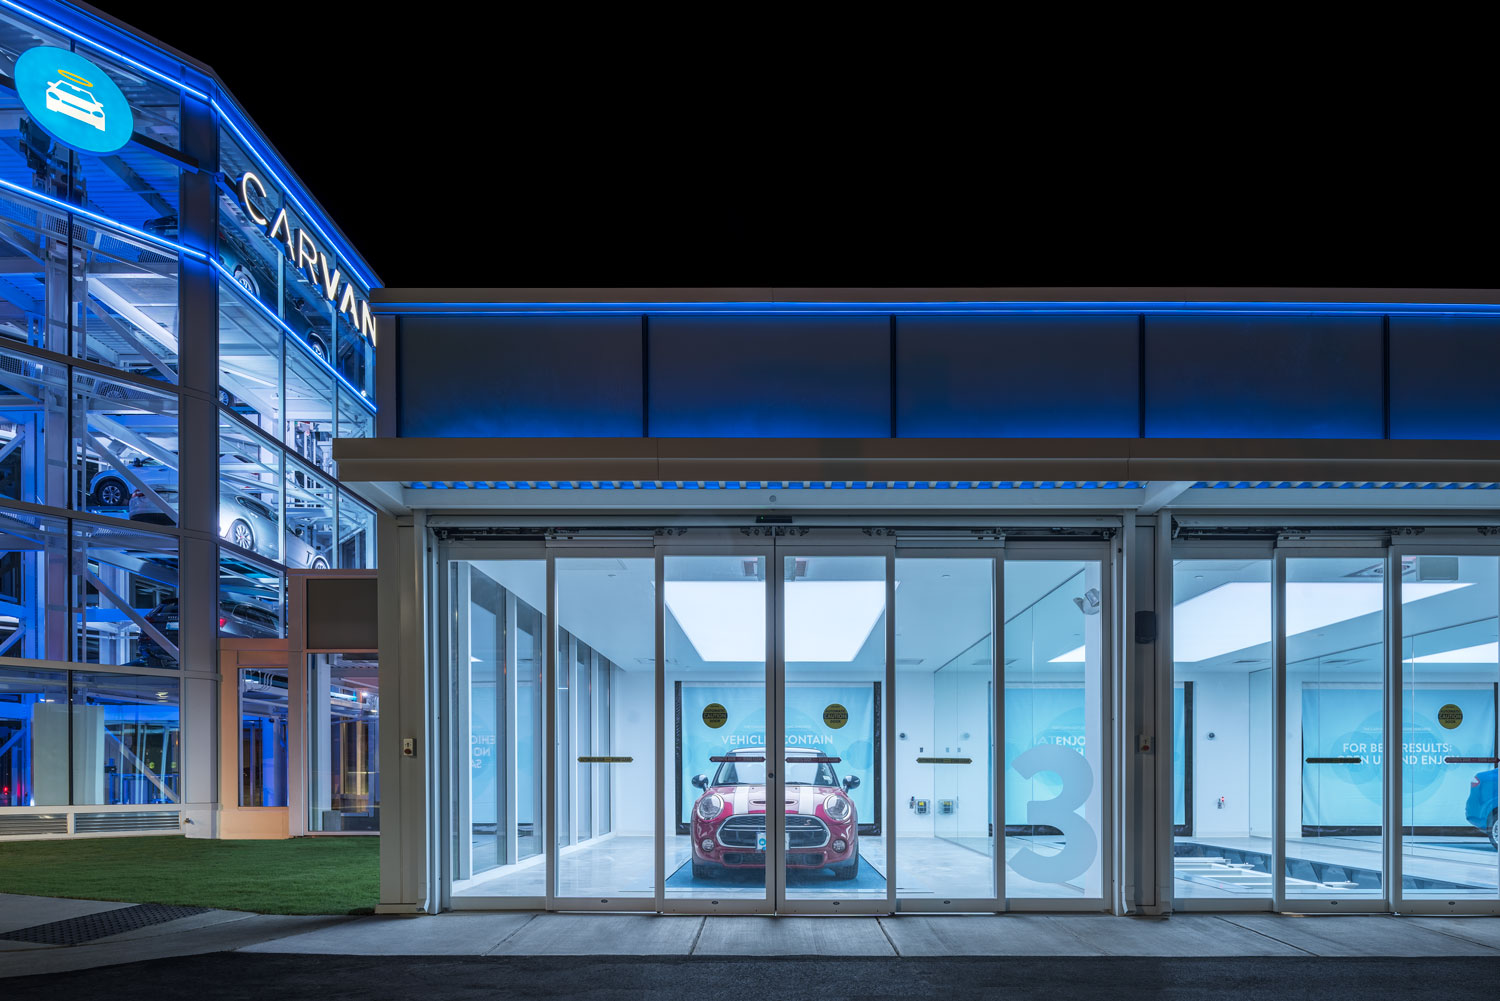 CARVANA, with a MINI Cooper S in bay 3 and their car vending machine off to the left, Raleigh, NC © harlan erskine.